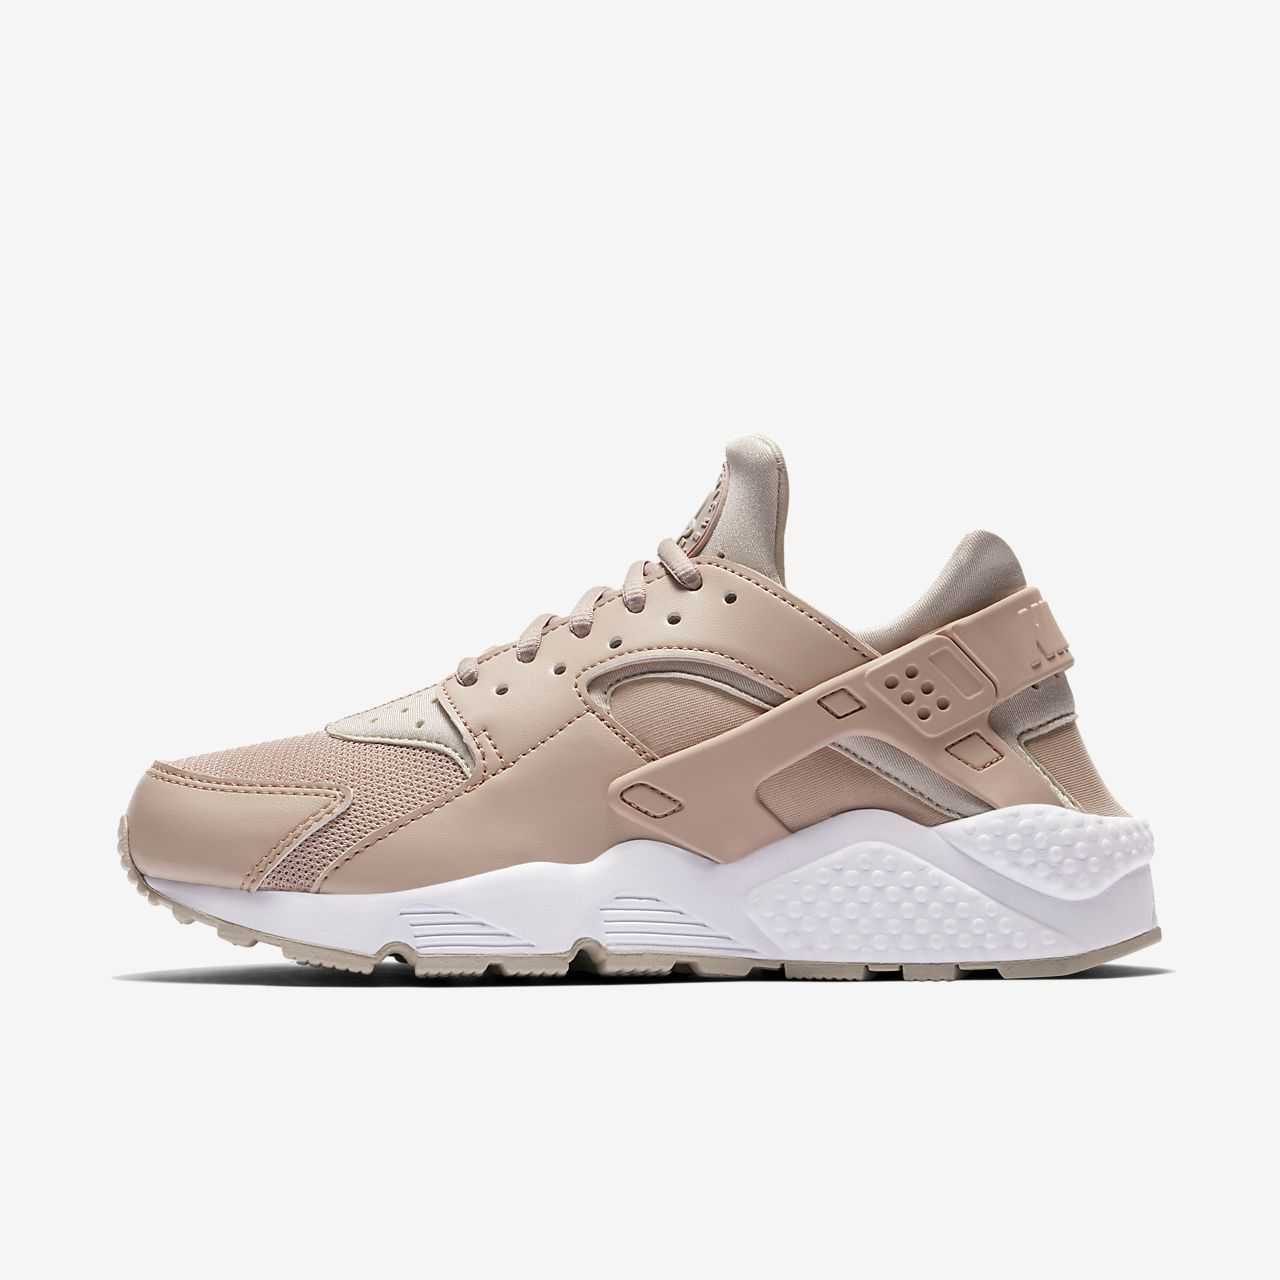 nike huarache ultra breathe white mens nz